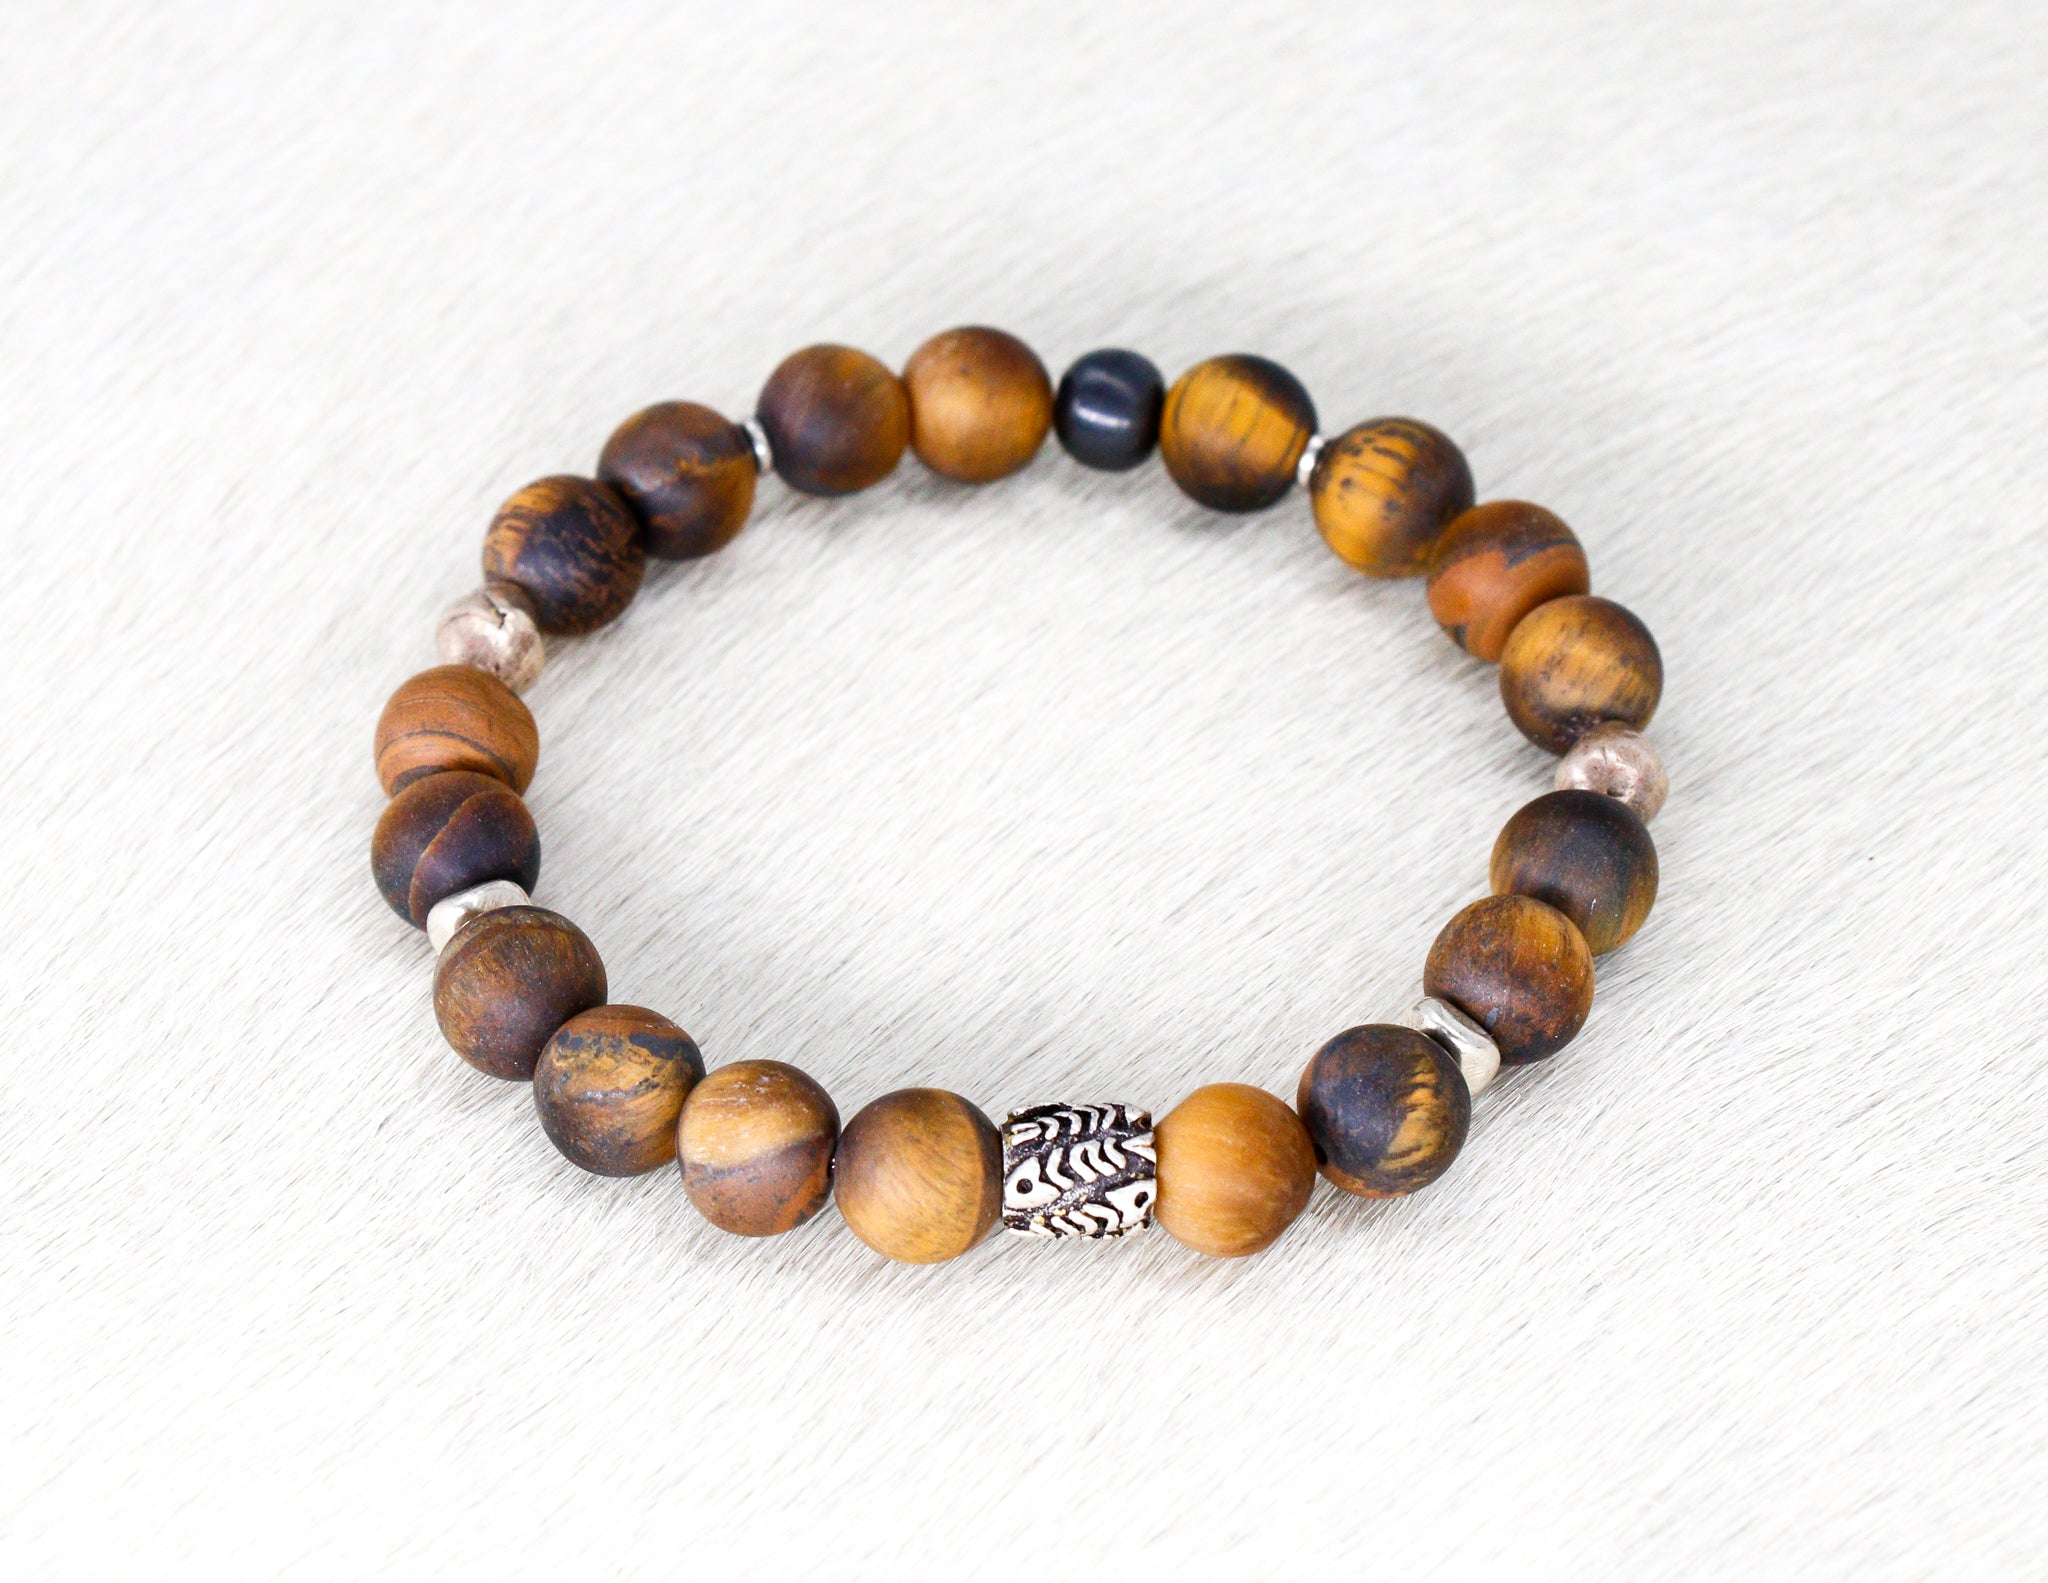 Matte tigereye bracelet with silver men's bracelet